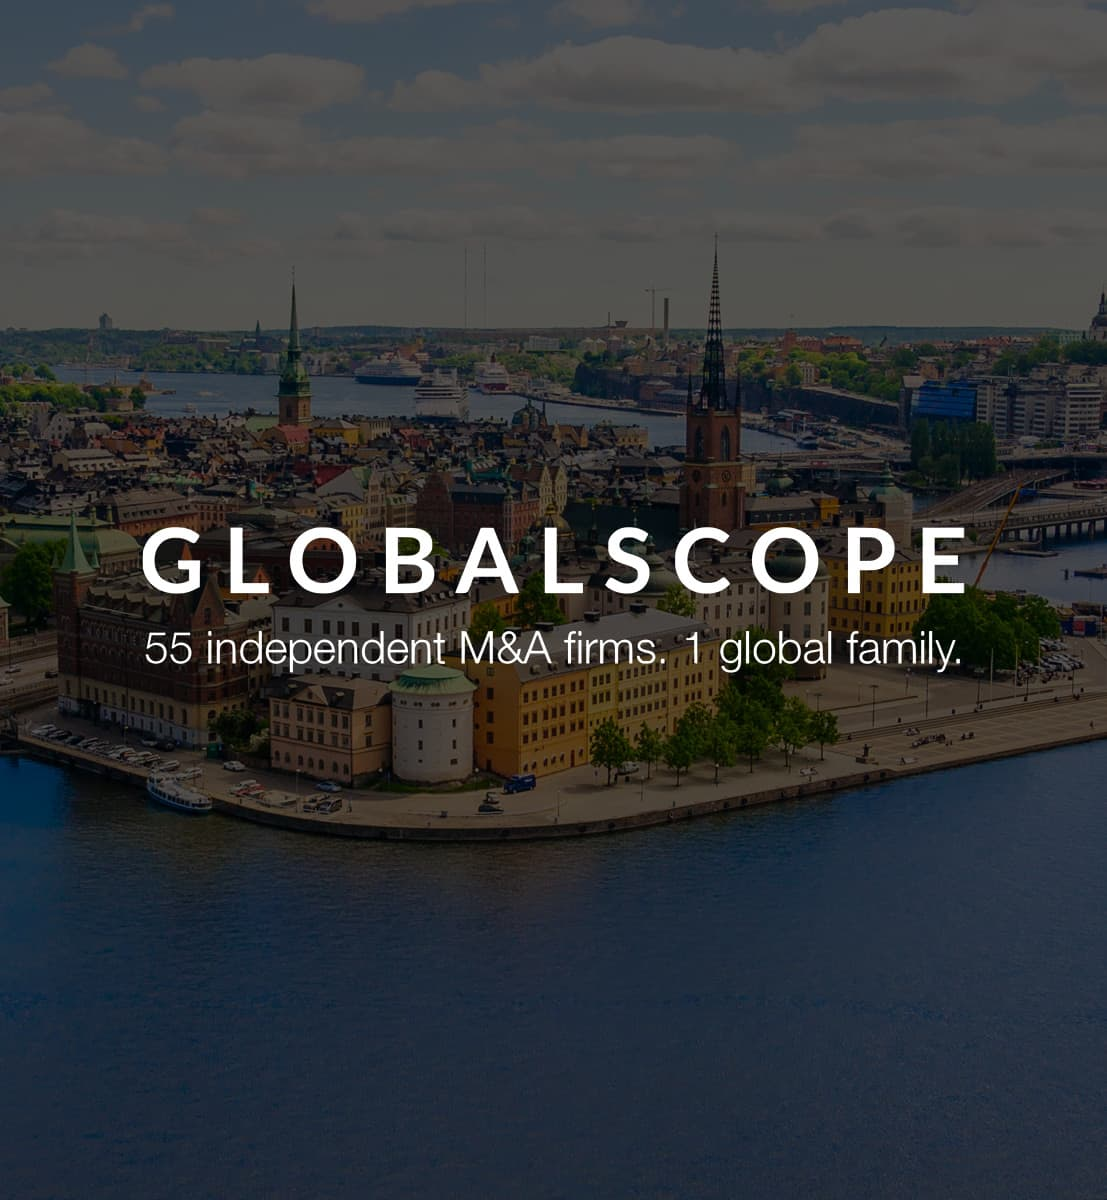 Globalscope Partners announce a new member in Sweden